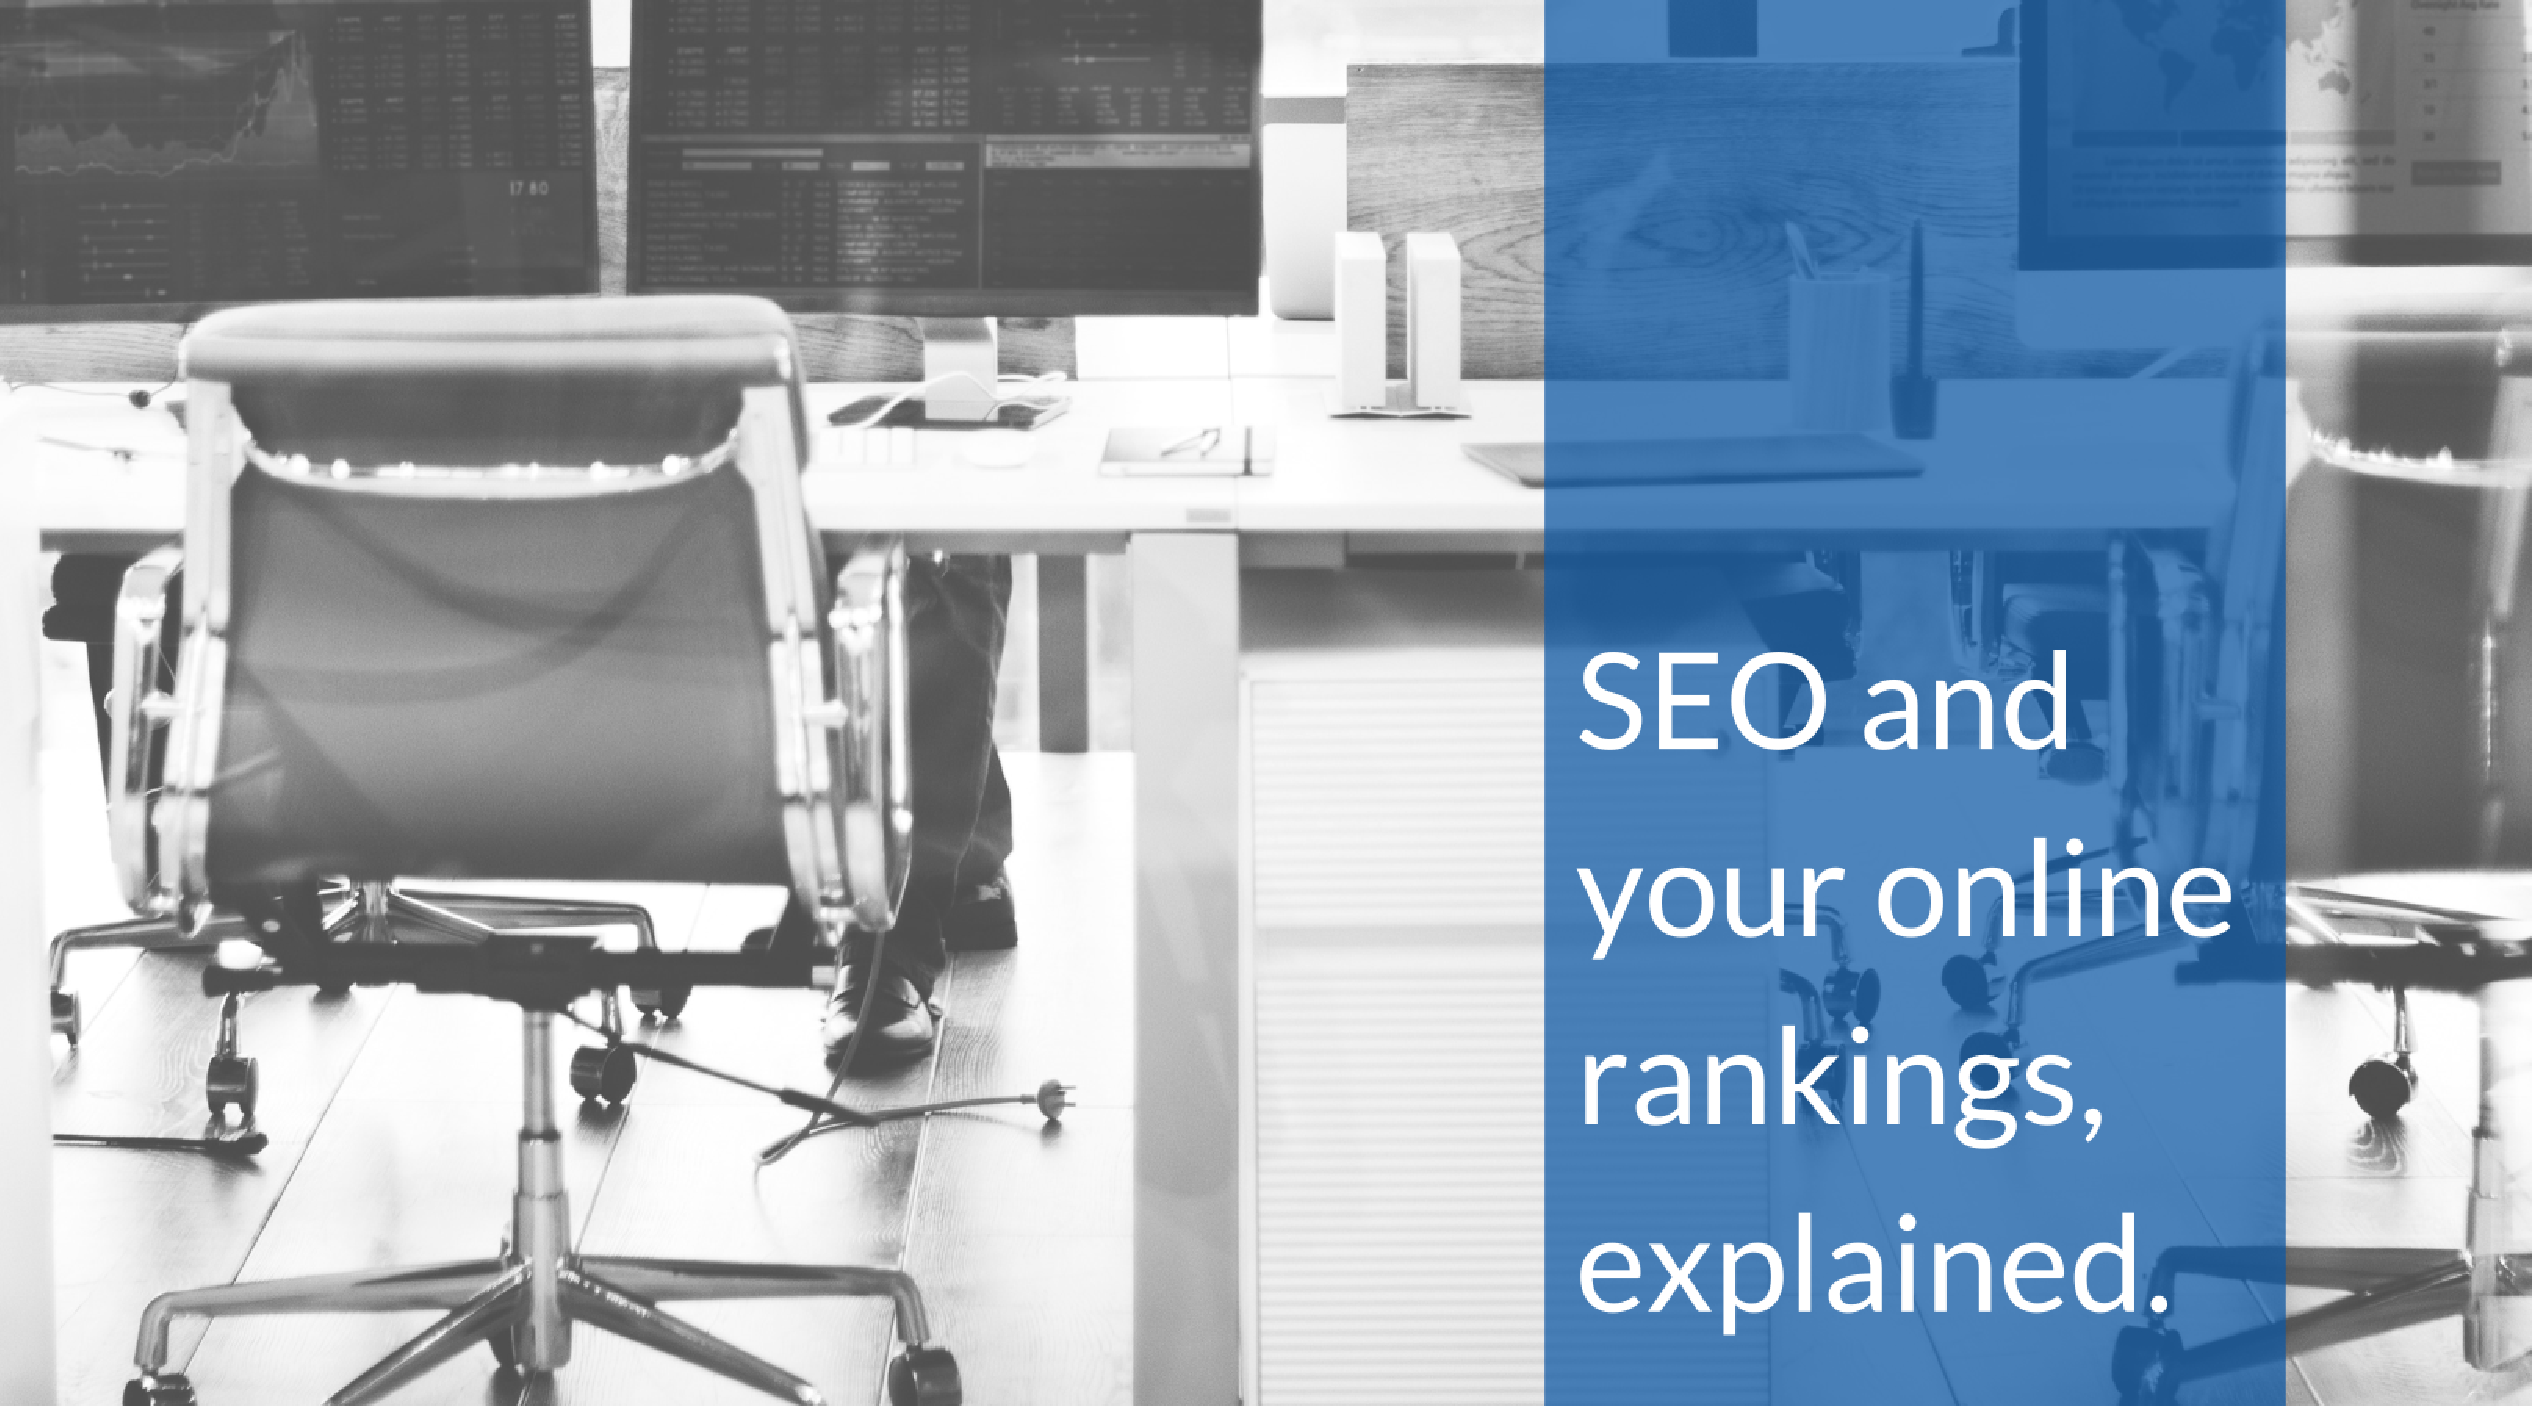 SEO and your online rankings